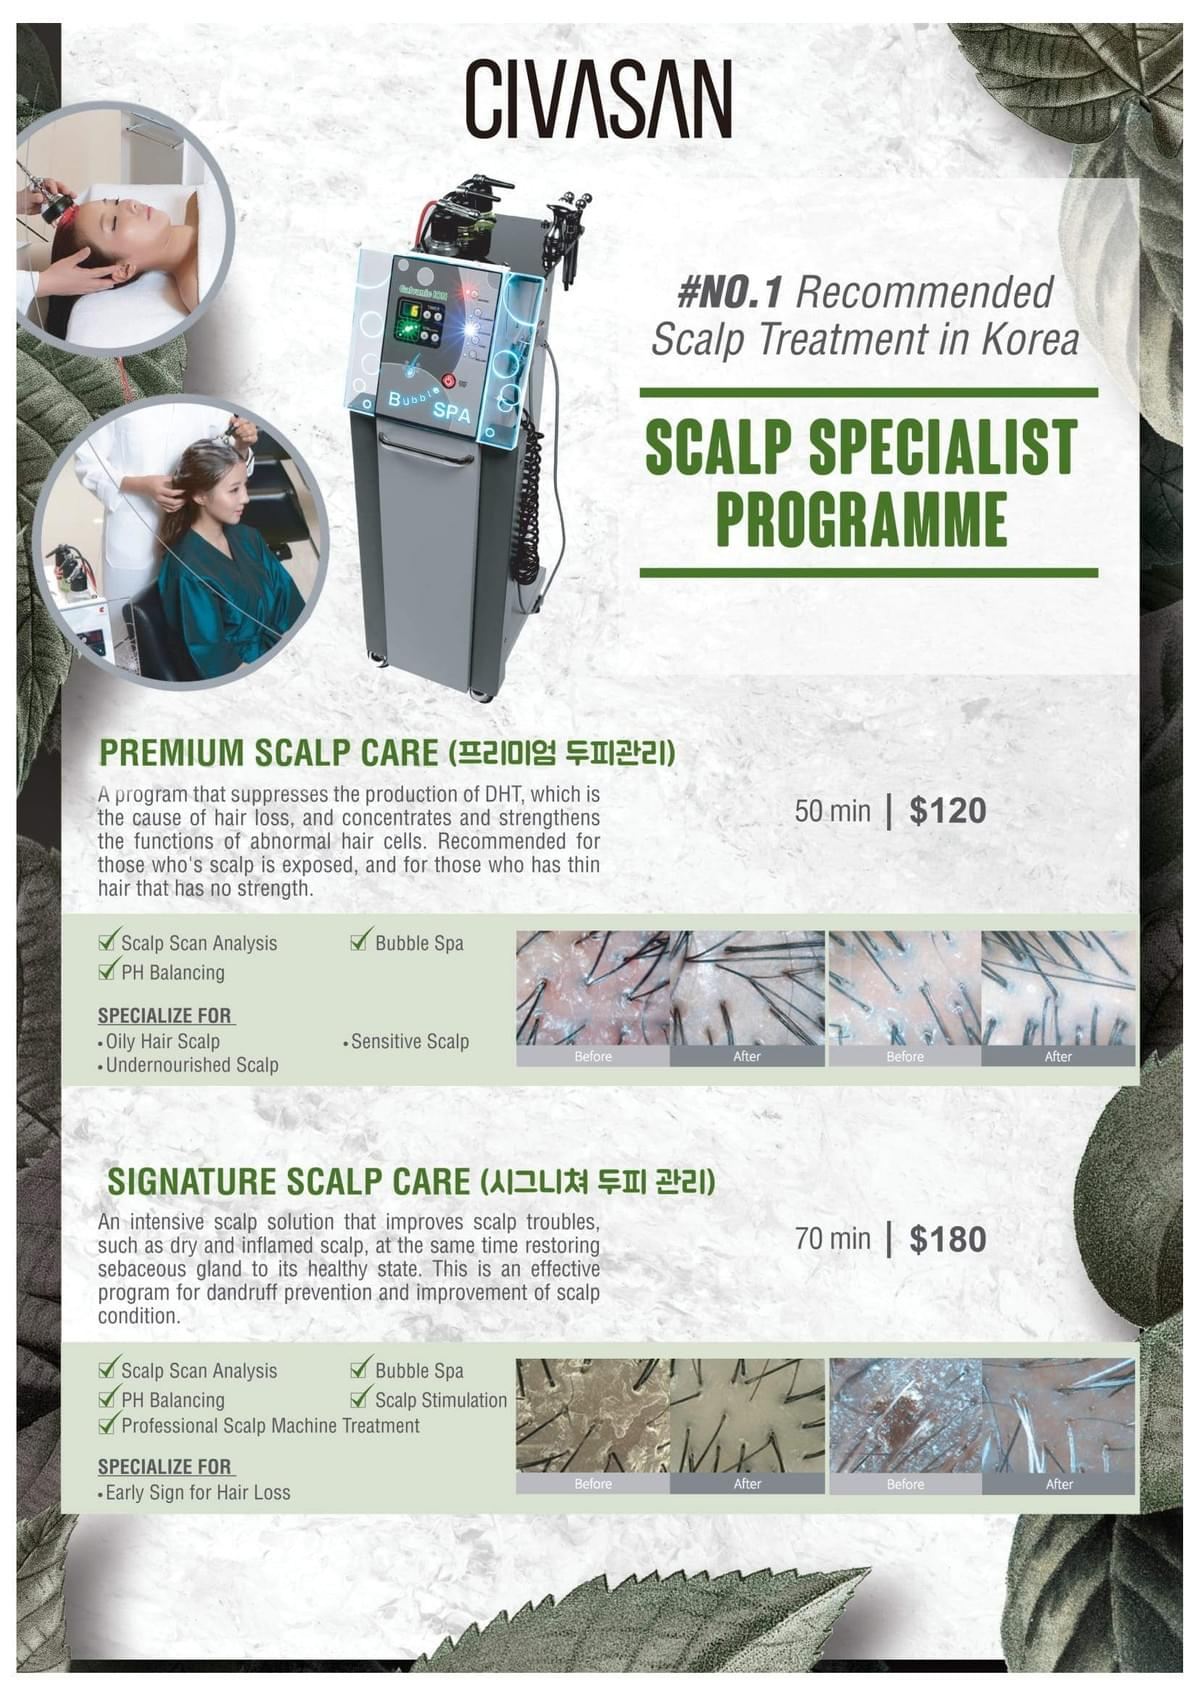 Pricing for hair and scalp treatment varies by hair needs and wants at Walking On Sunshine Korean Salon Singapore